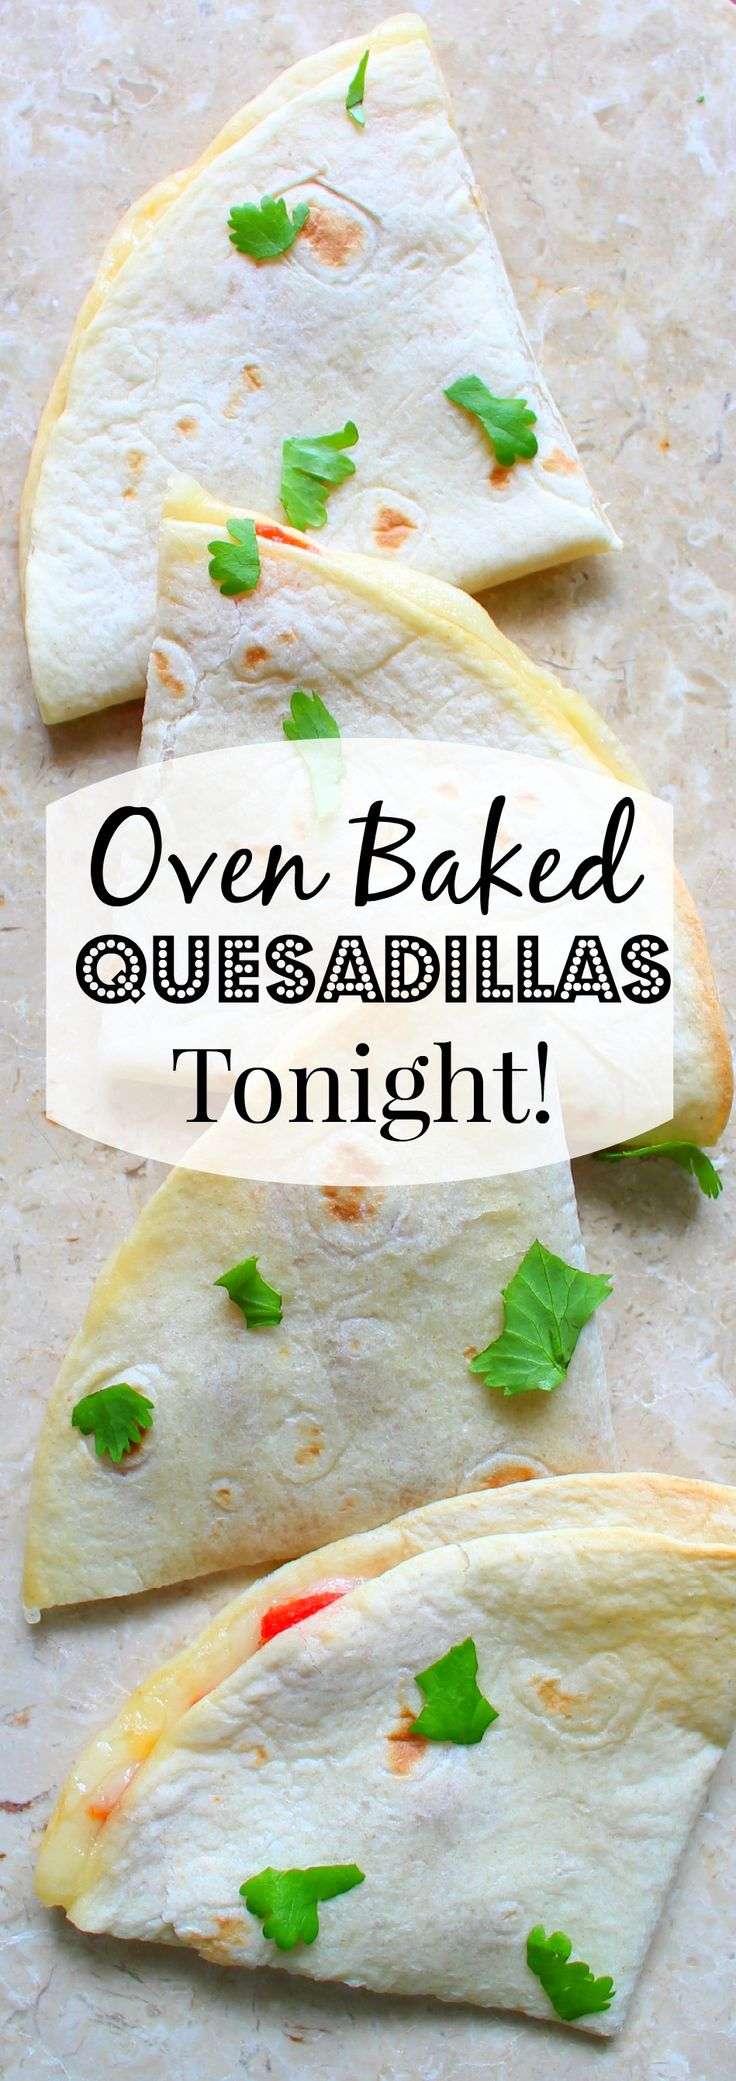 Why stand over a hot skillet when you can have oven baked quesadillas in half the time with half the work?  Follow Recipe for Perfection for more great time-saving recipes!